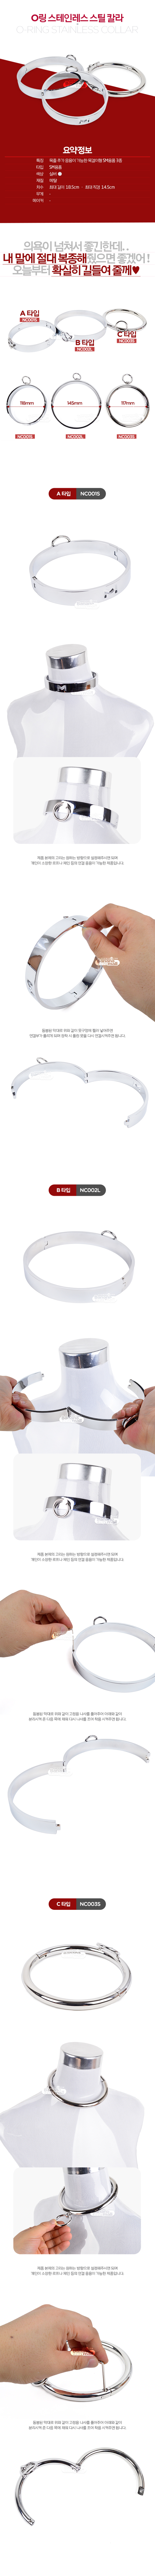 [SM 목줄] O링 스테인레스 스 칼라(O-ring Stainless Steel Collar) - HSY(NC001S) (HSY)